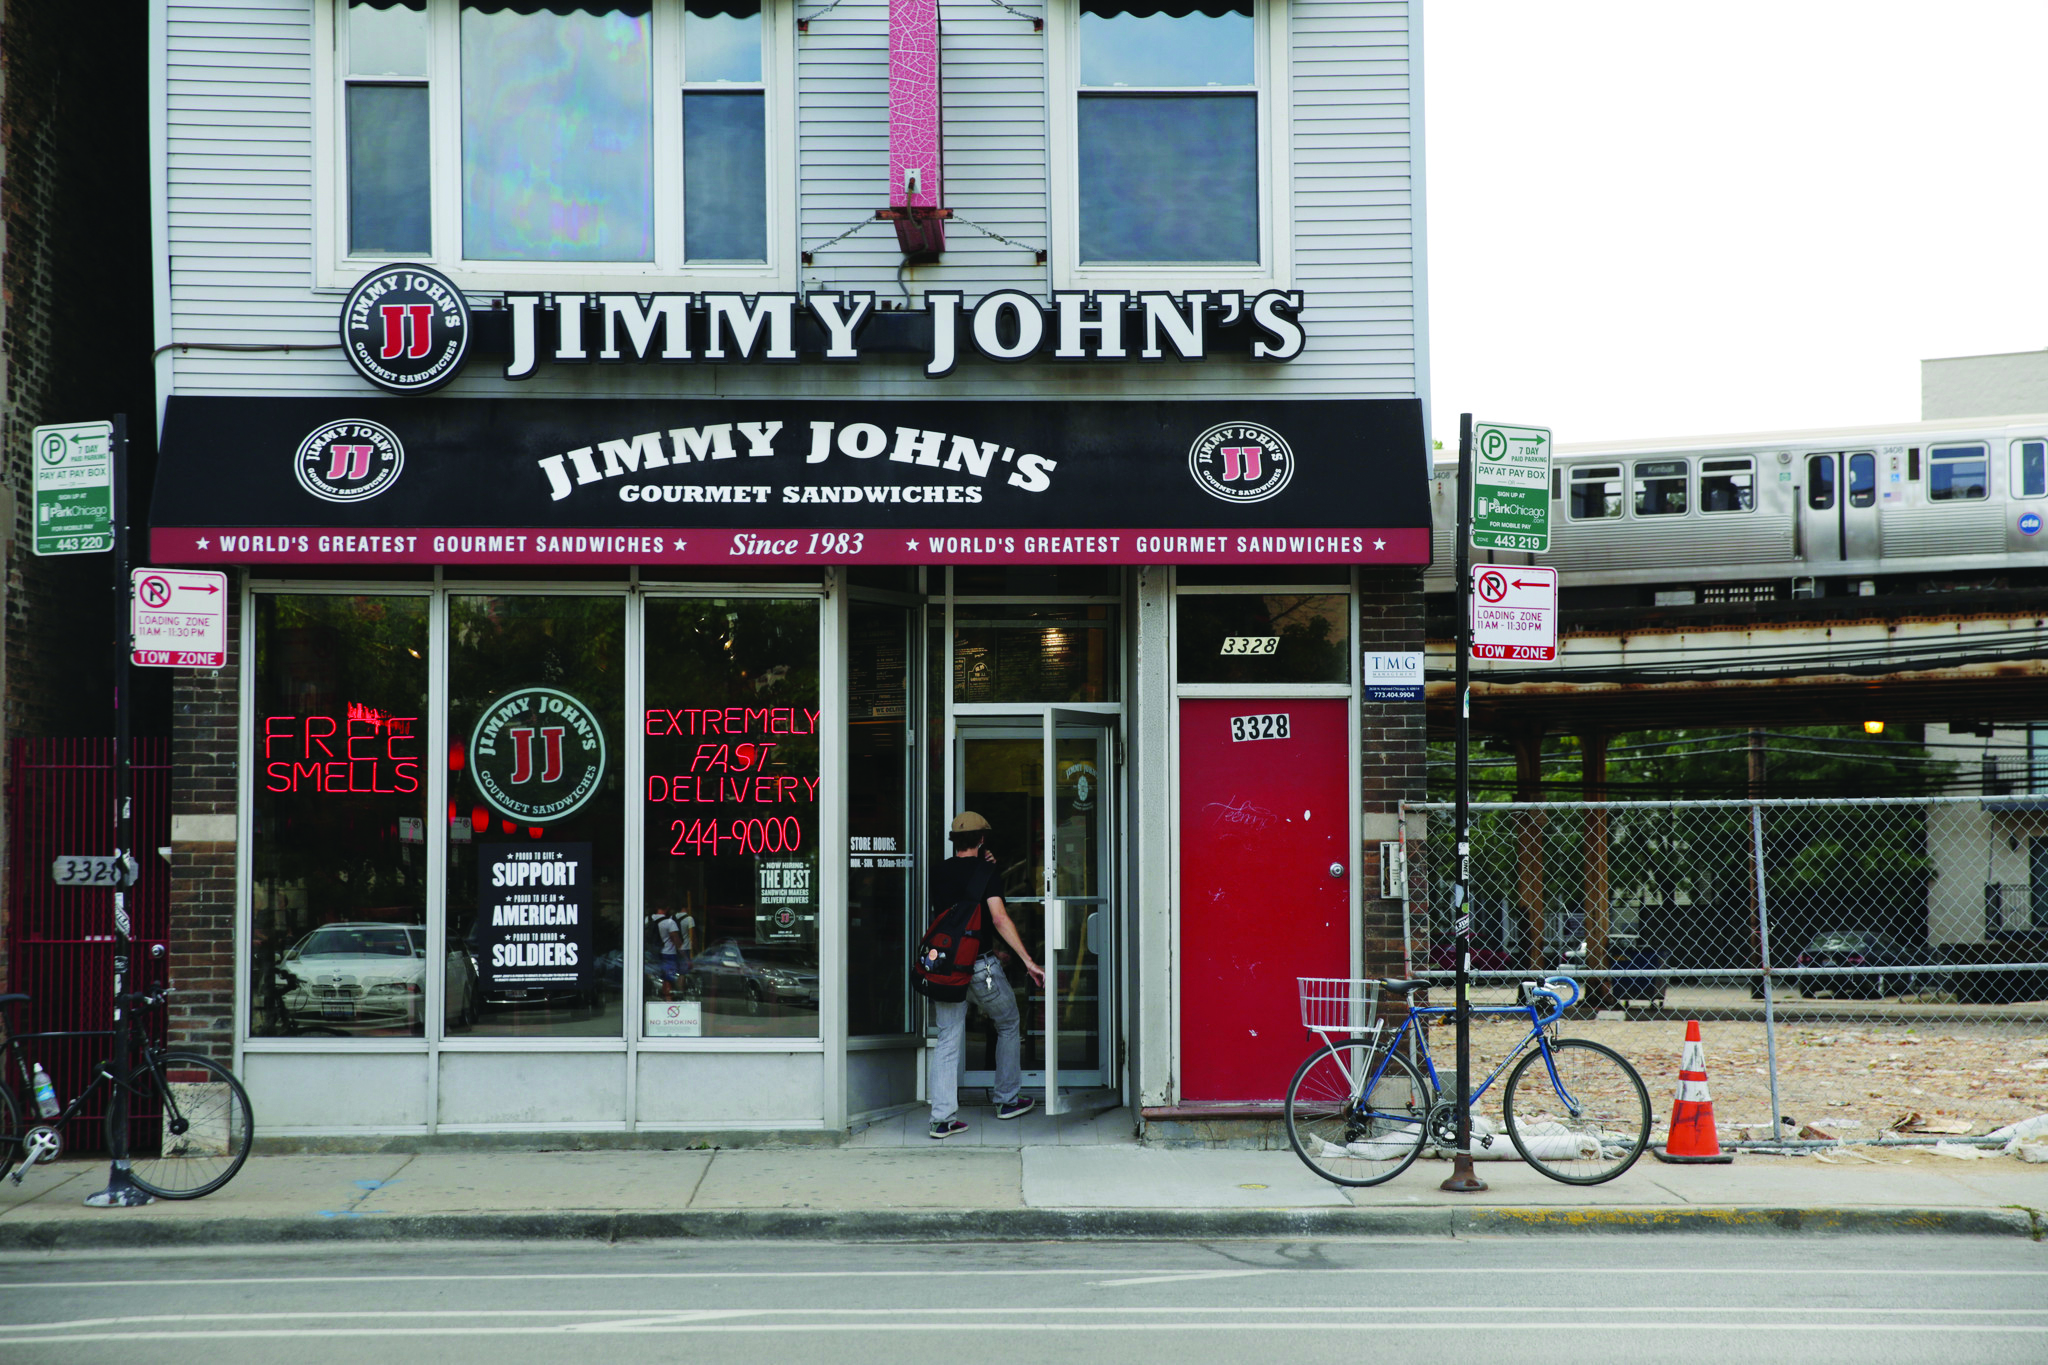 An customer walks into a Jimmy John's located at 3328 North Clark St., Wednesday, Sept. 24, 2014, in Chicago. This location, along with three others in Chicago, is among 216 Jimmy John's that have had a data breach involving credit and debit card information. (Armando L. Sanchez/Chicago Tribune)